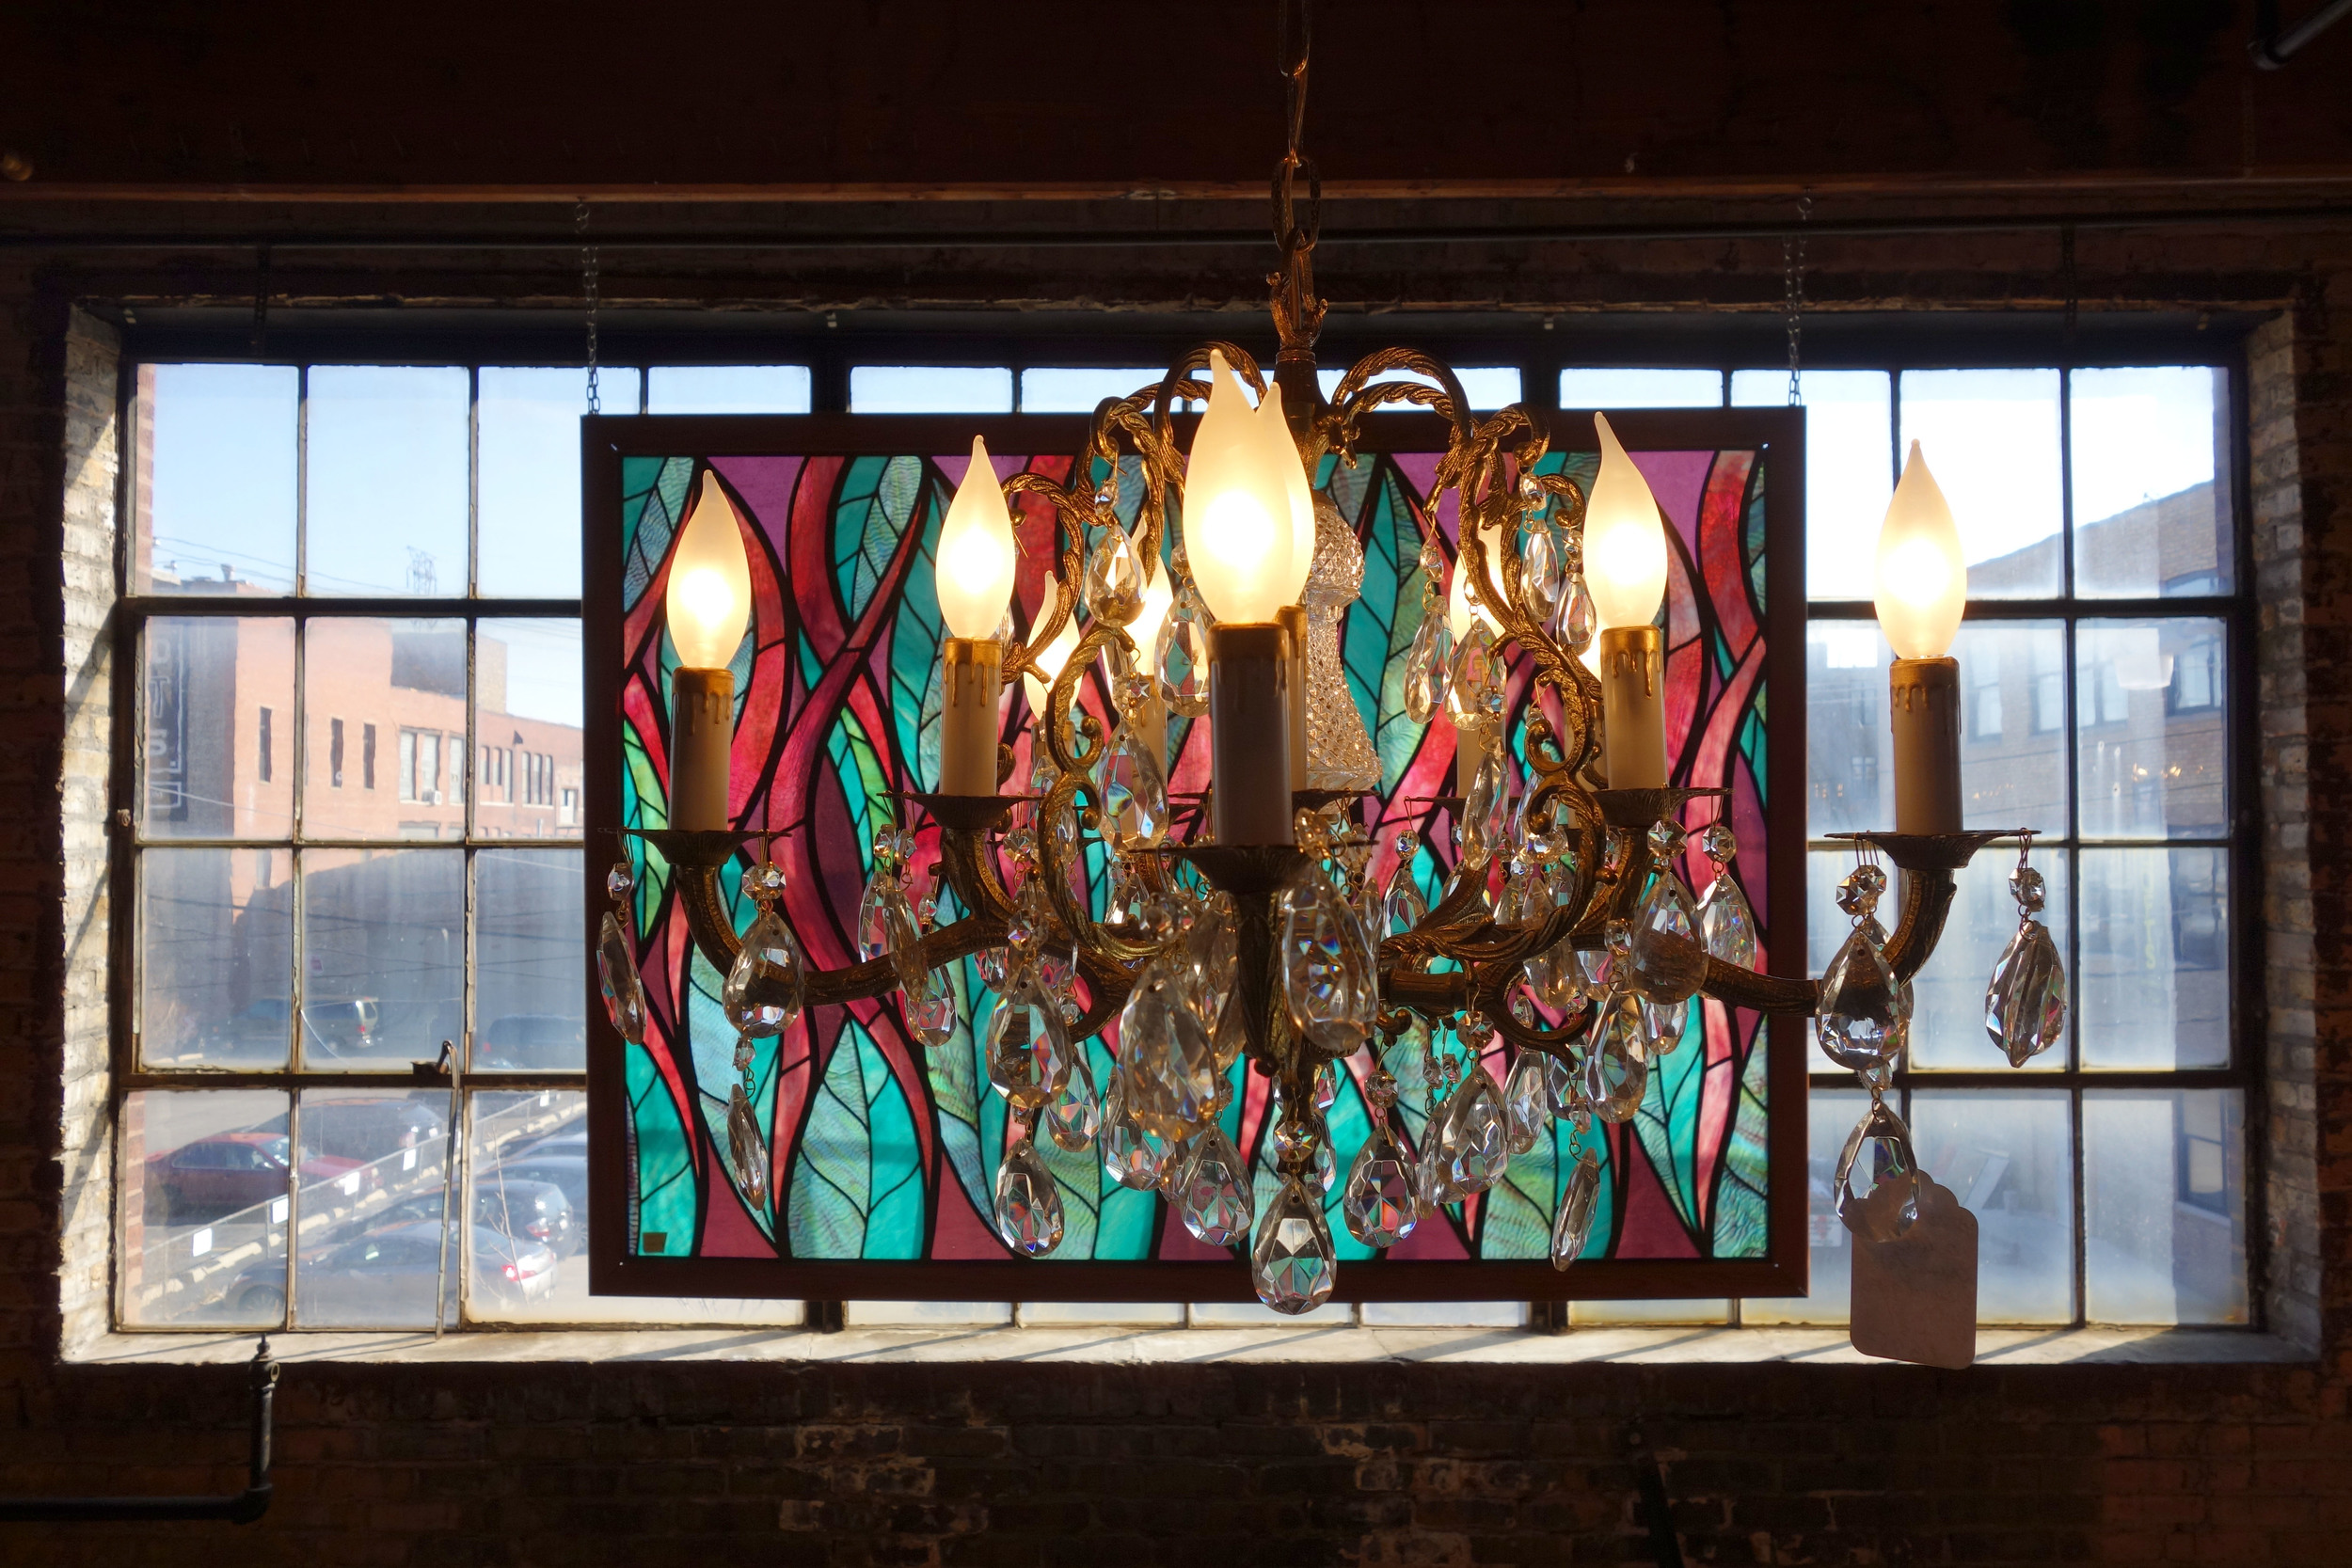 This view though, it is gorgeous. Stained glass windows filter the light that enters the second floor event space at Salvage One.